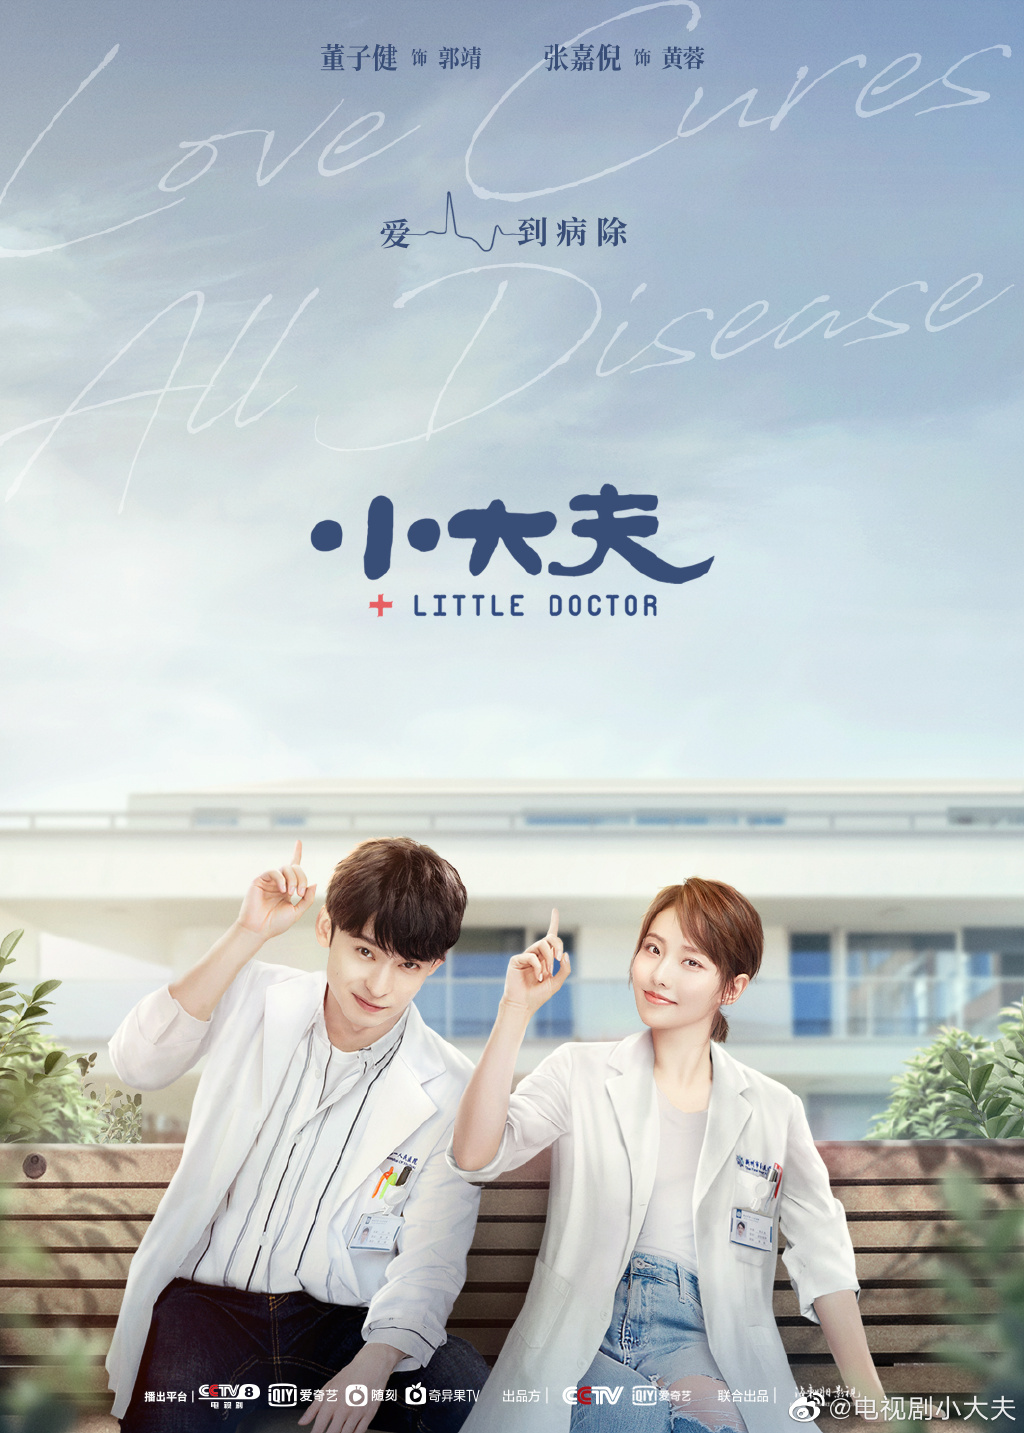 Little Doctor Chinese Drama Poster